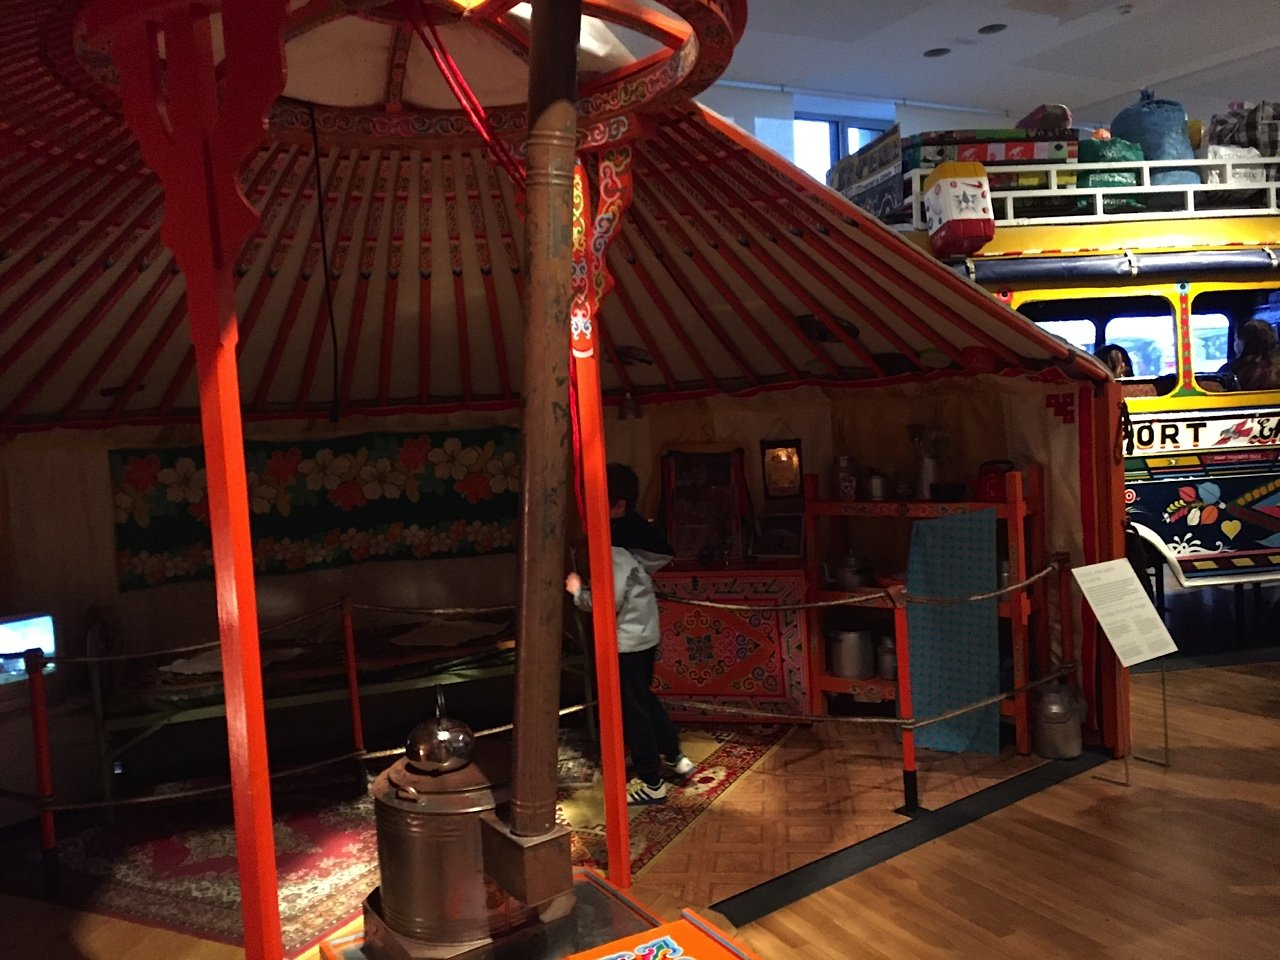 Musee Homme Yurt 6032